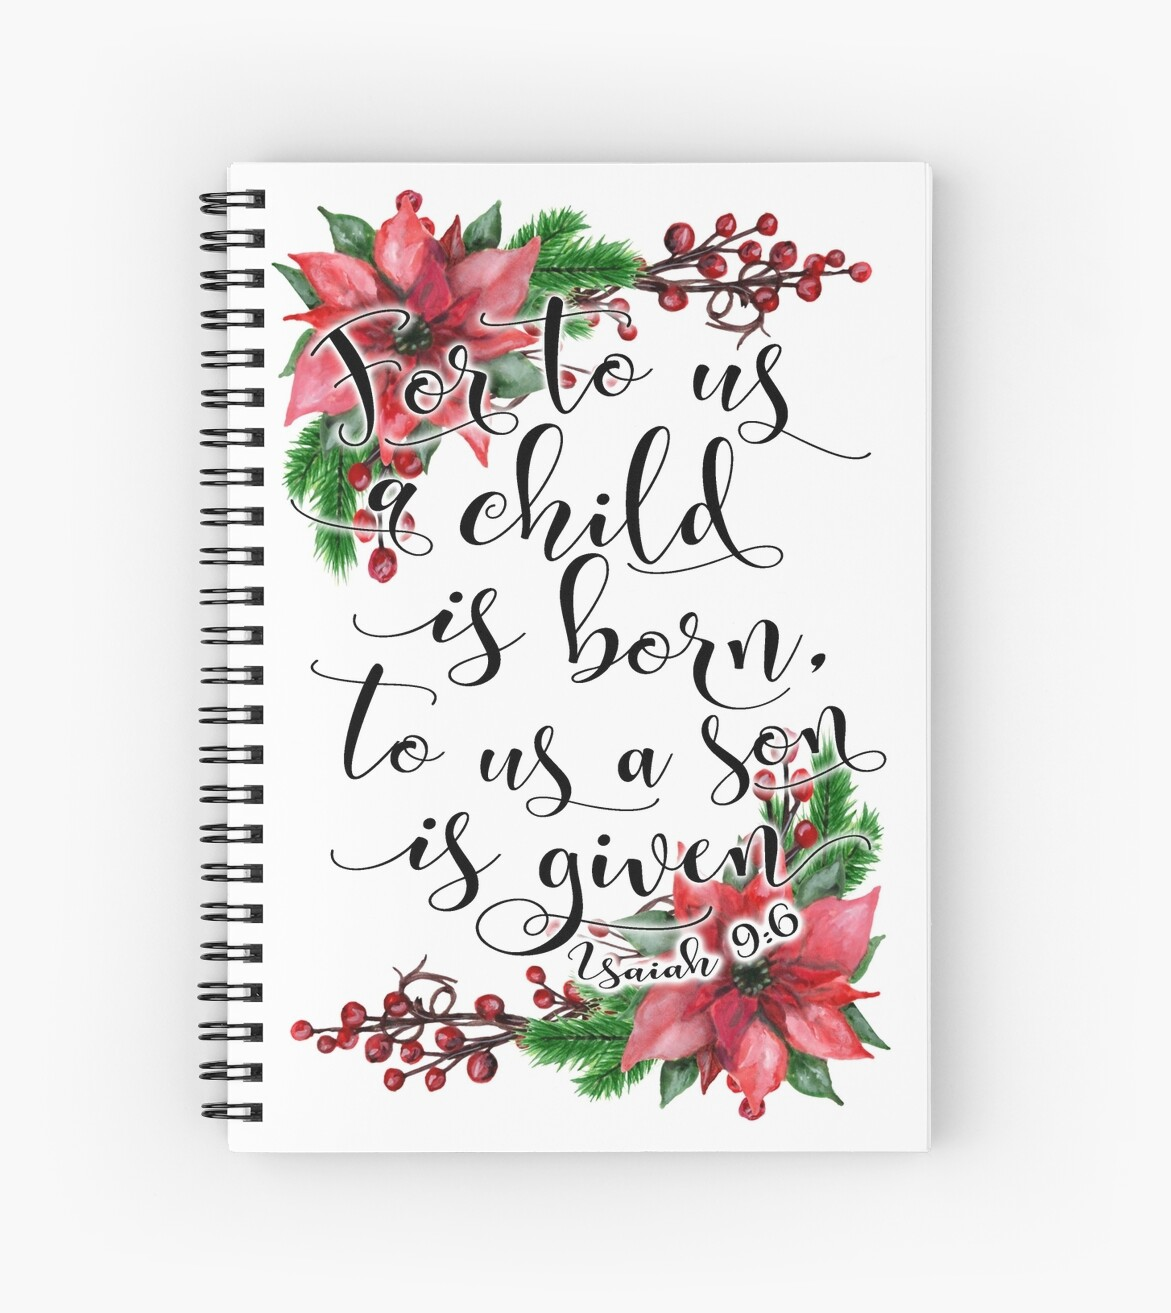 Floral Christmas Bible verse Isaiah 9:6 For to us a child is born ...